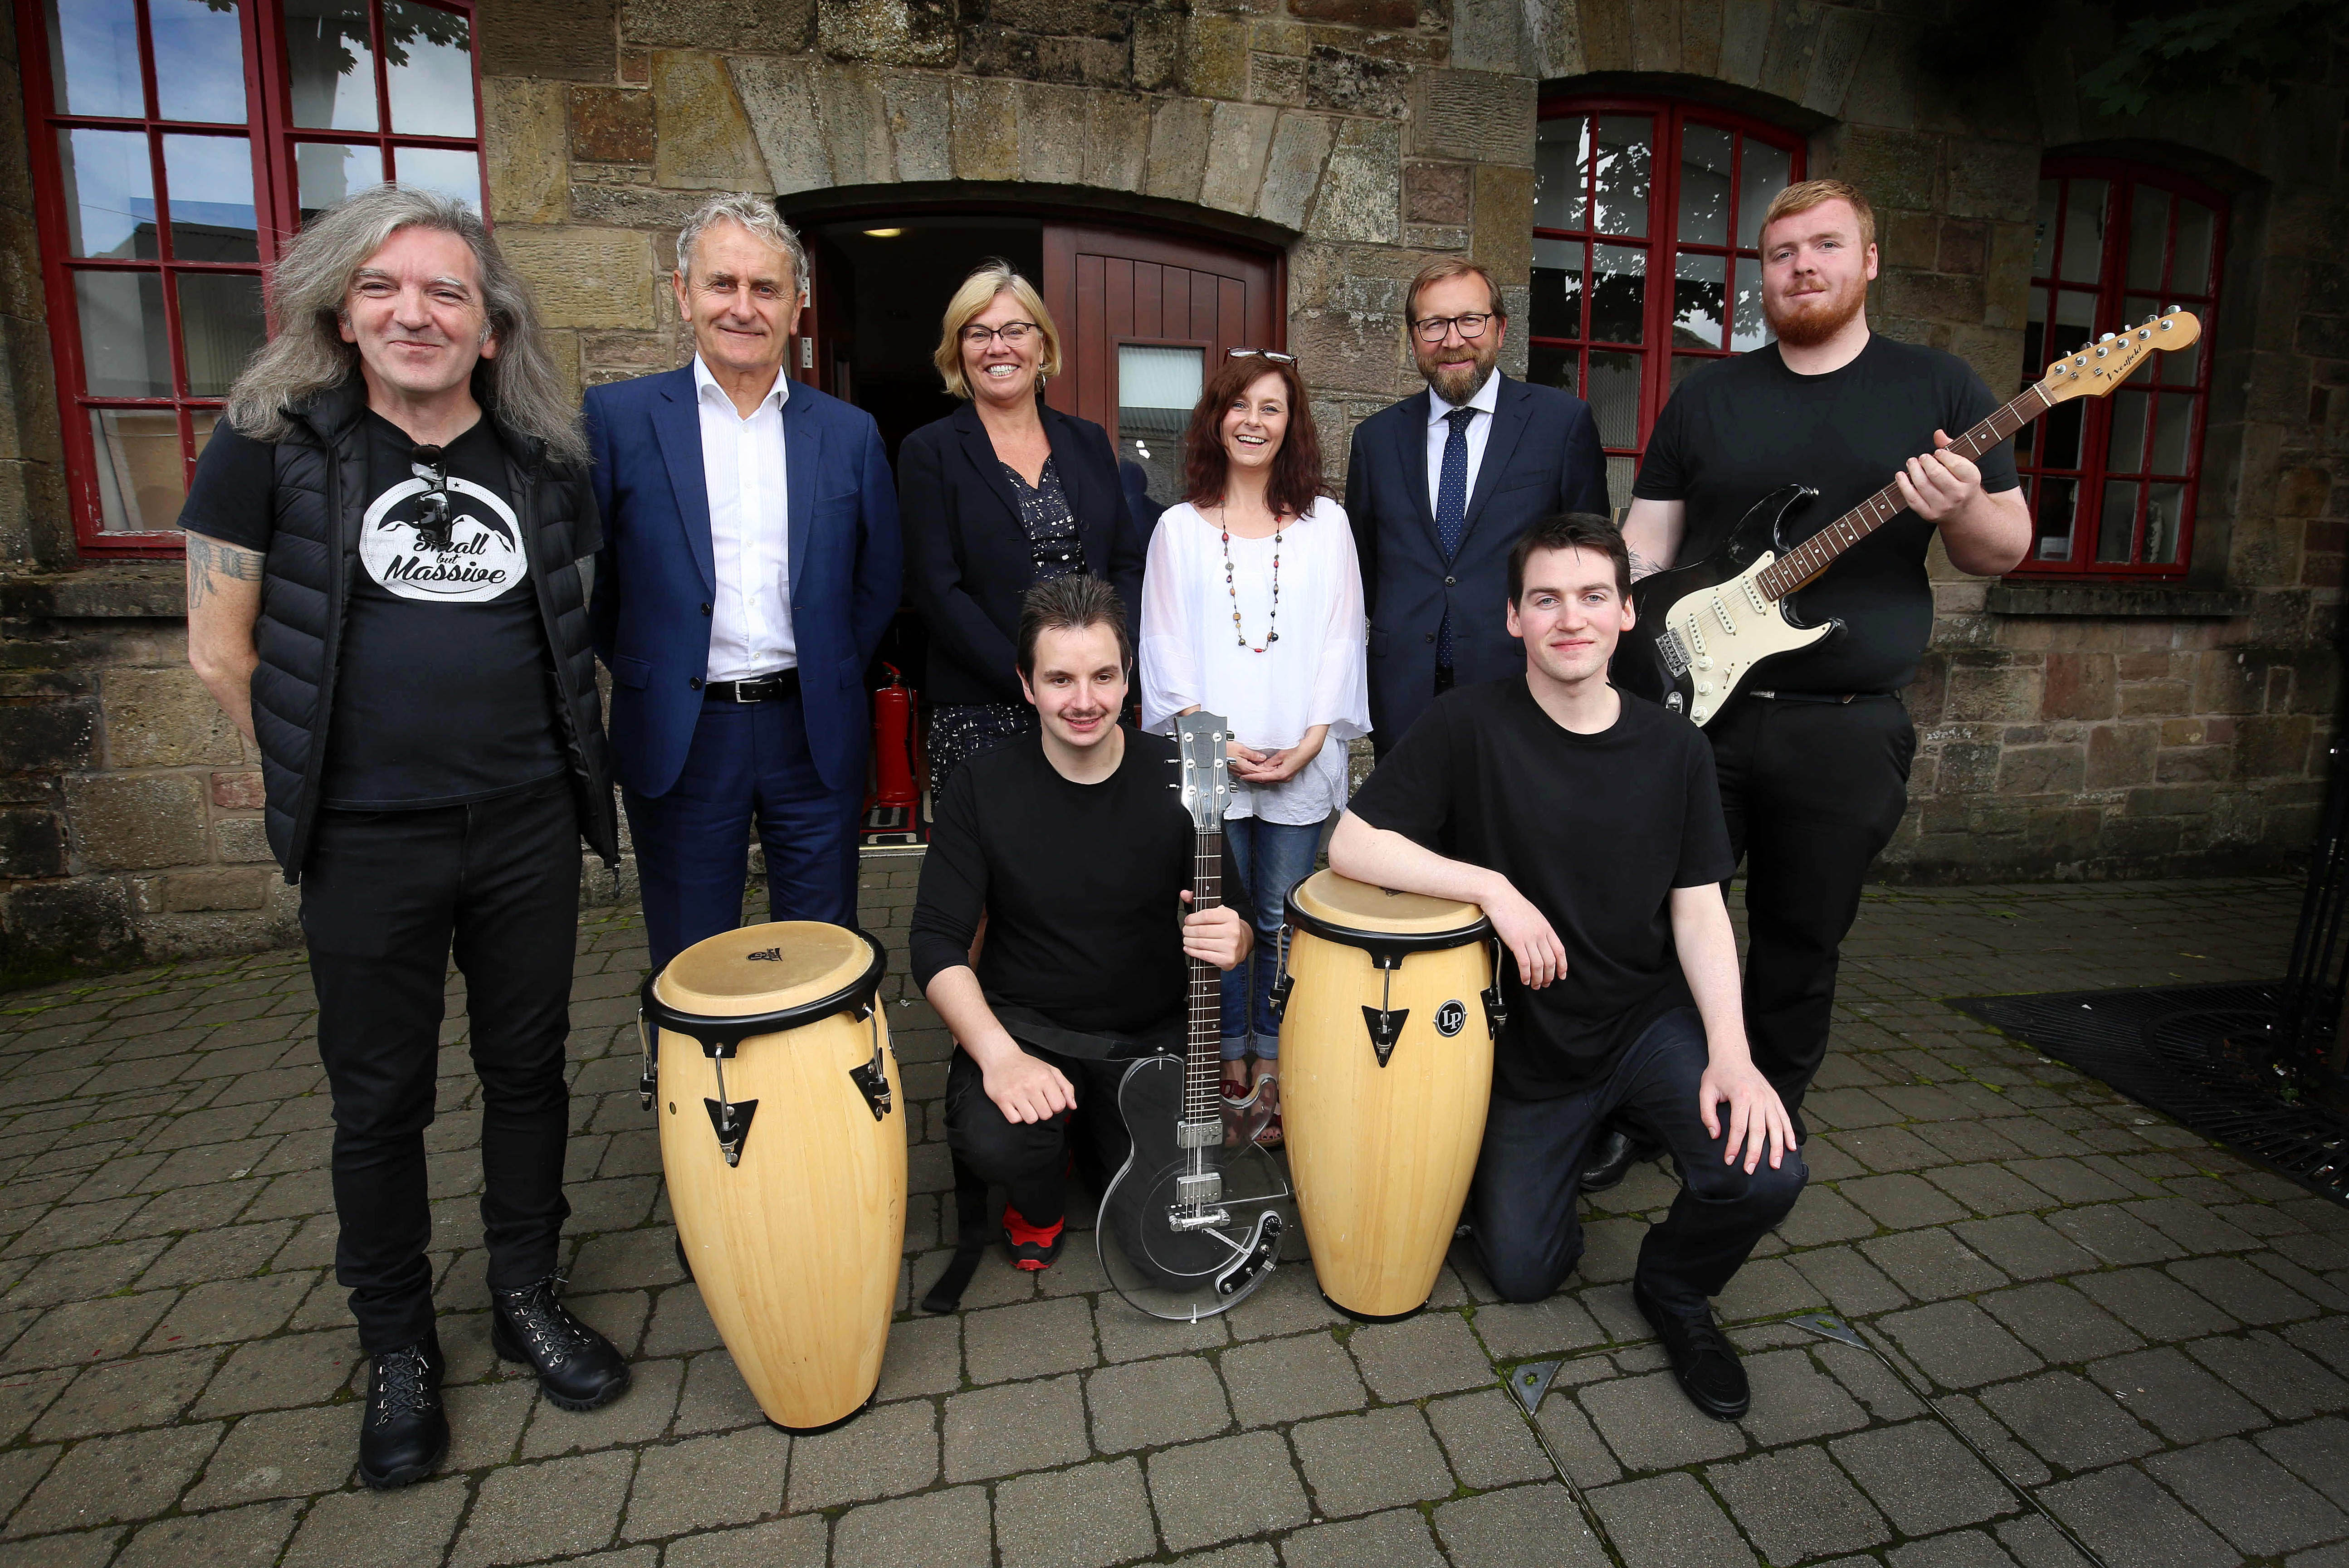 Glasgowbury youth showcases creative talent in Draperstown